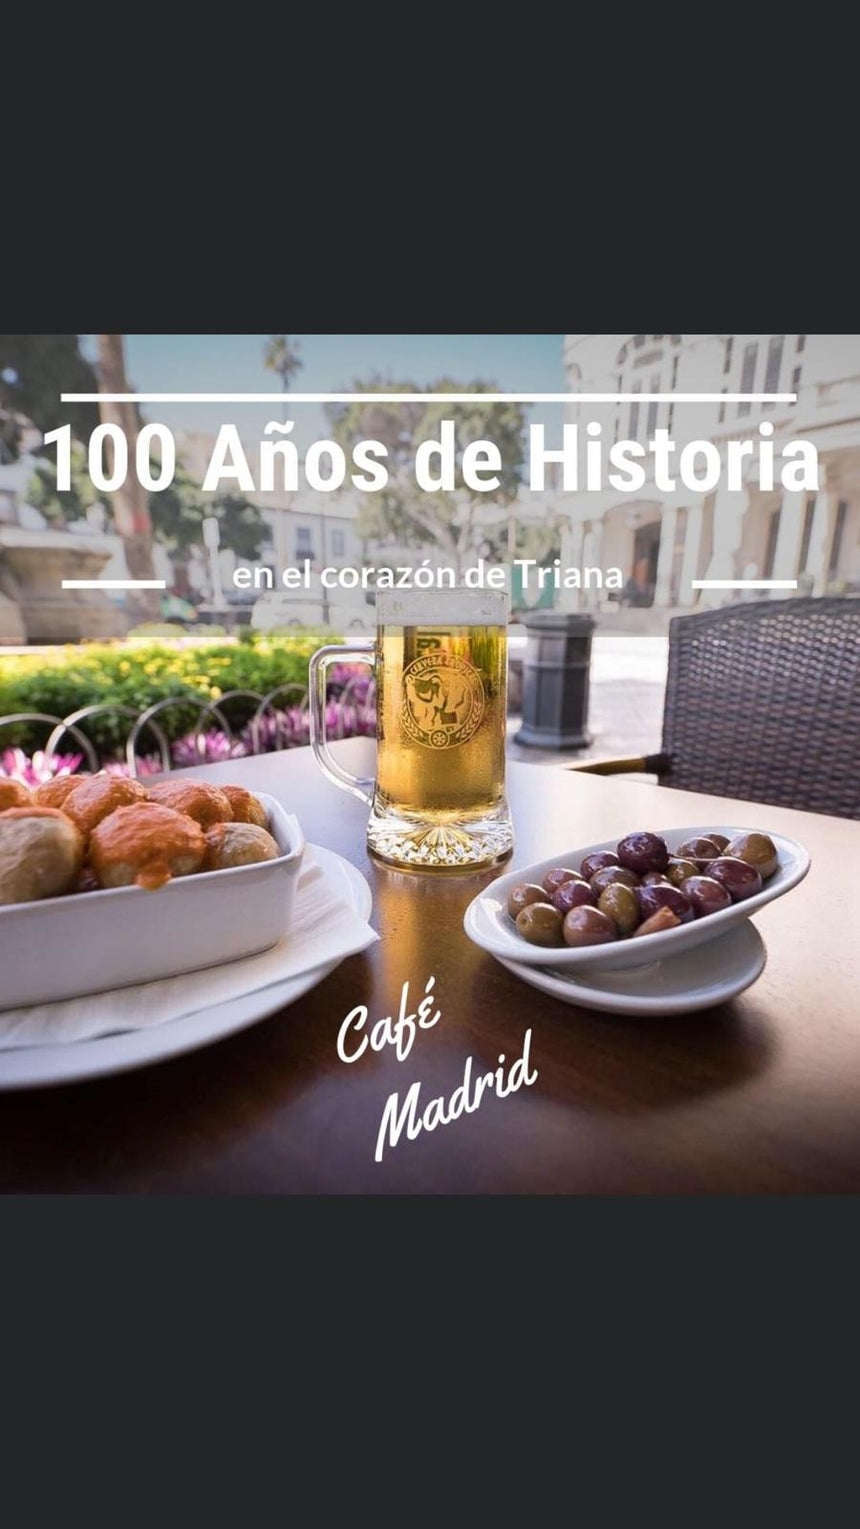 CAFÉ MADRID (35002) - Ticket Regalo